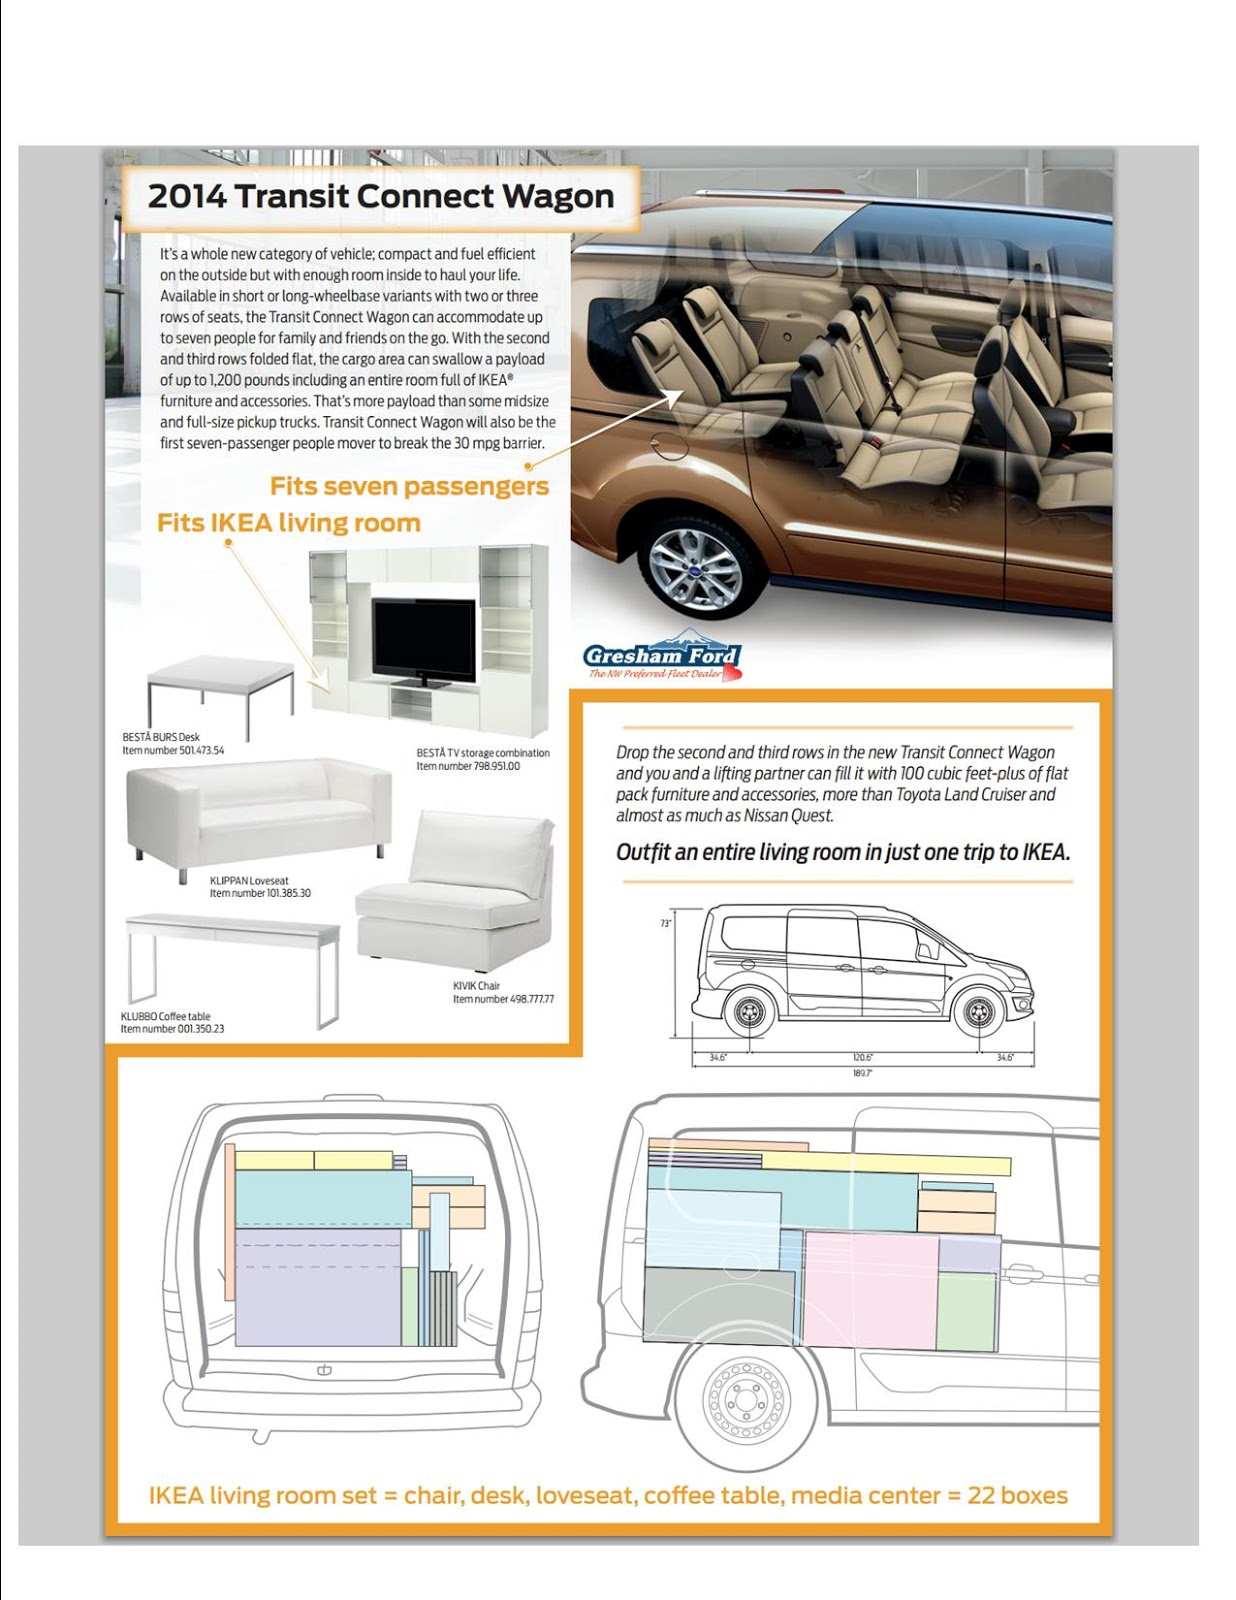 gresham ford - your oregon ford dealership: the transit connect is